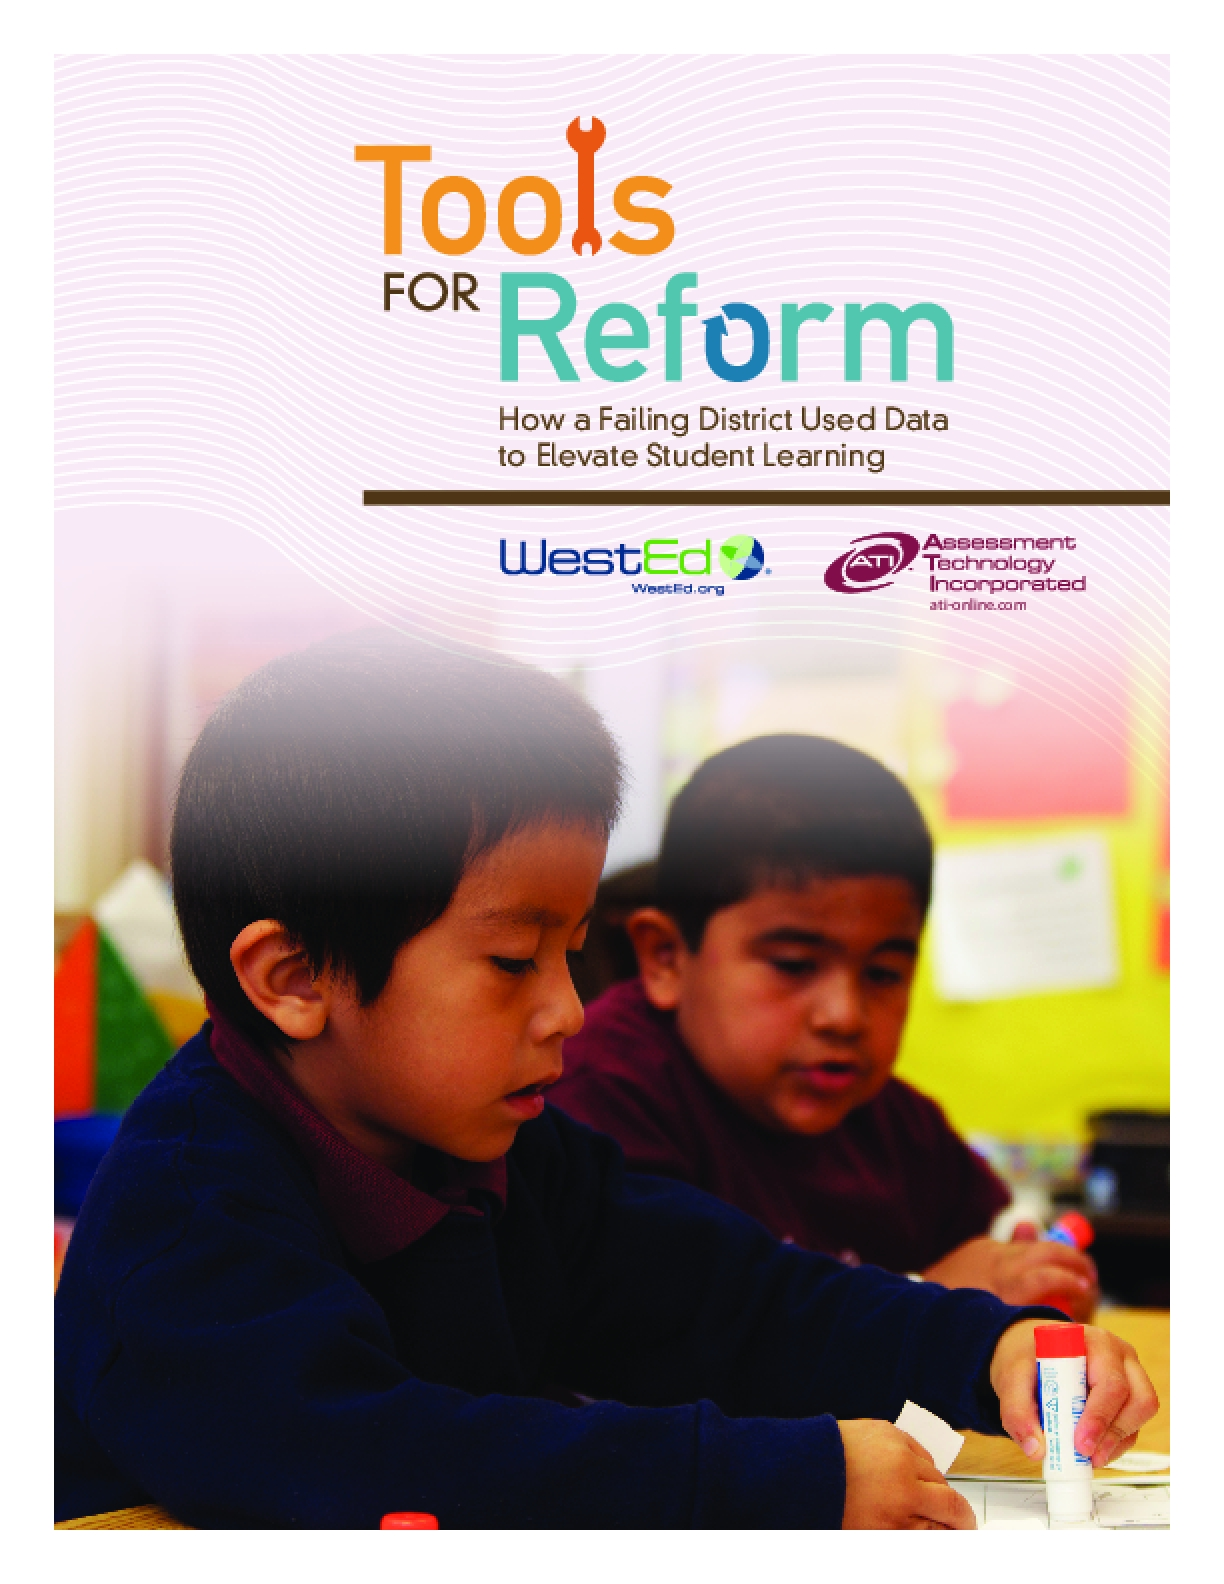 Tools for Reform: How a Failing District Used Data to Elevate Student Learning